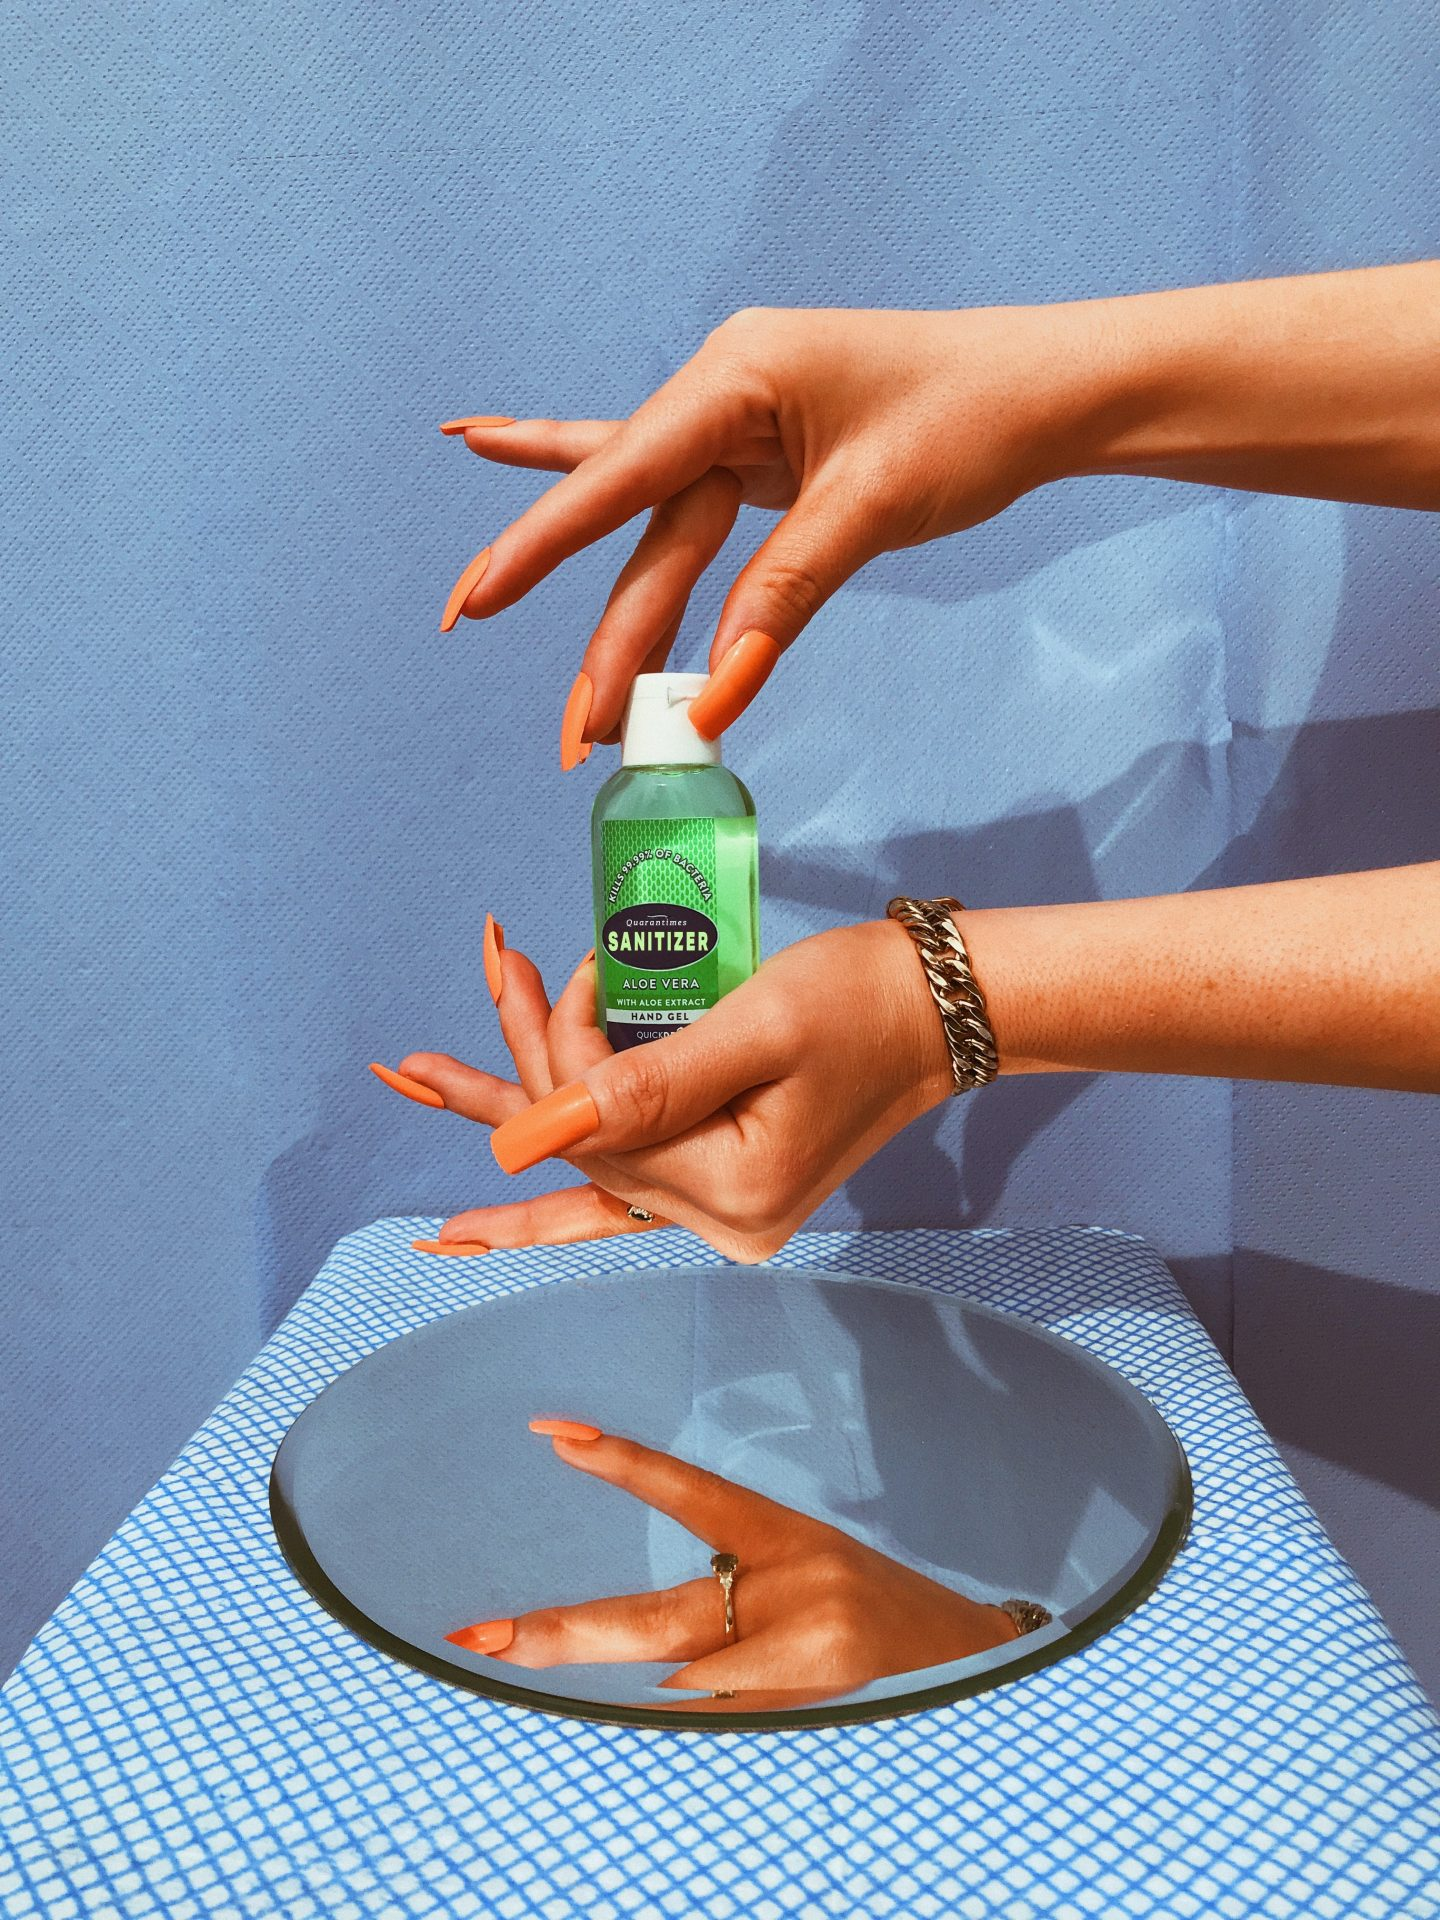 lady washing hands with hand sanitizer to stop the spread of the coronavirus